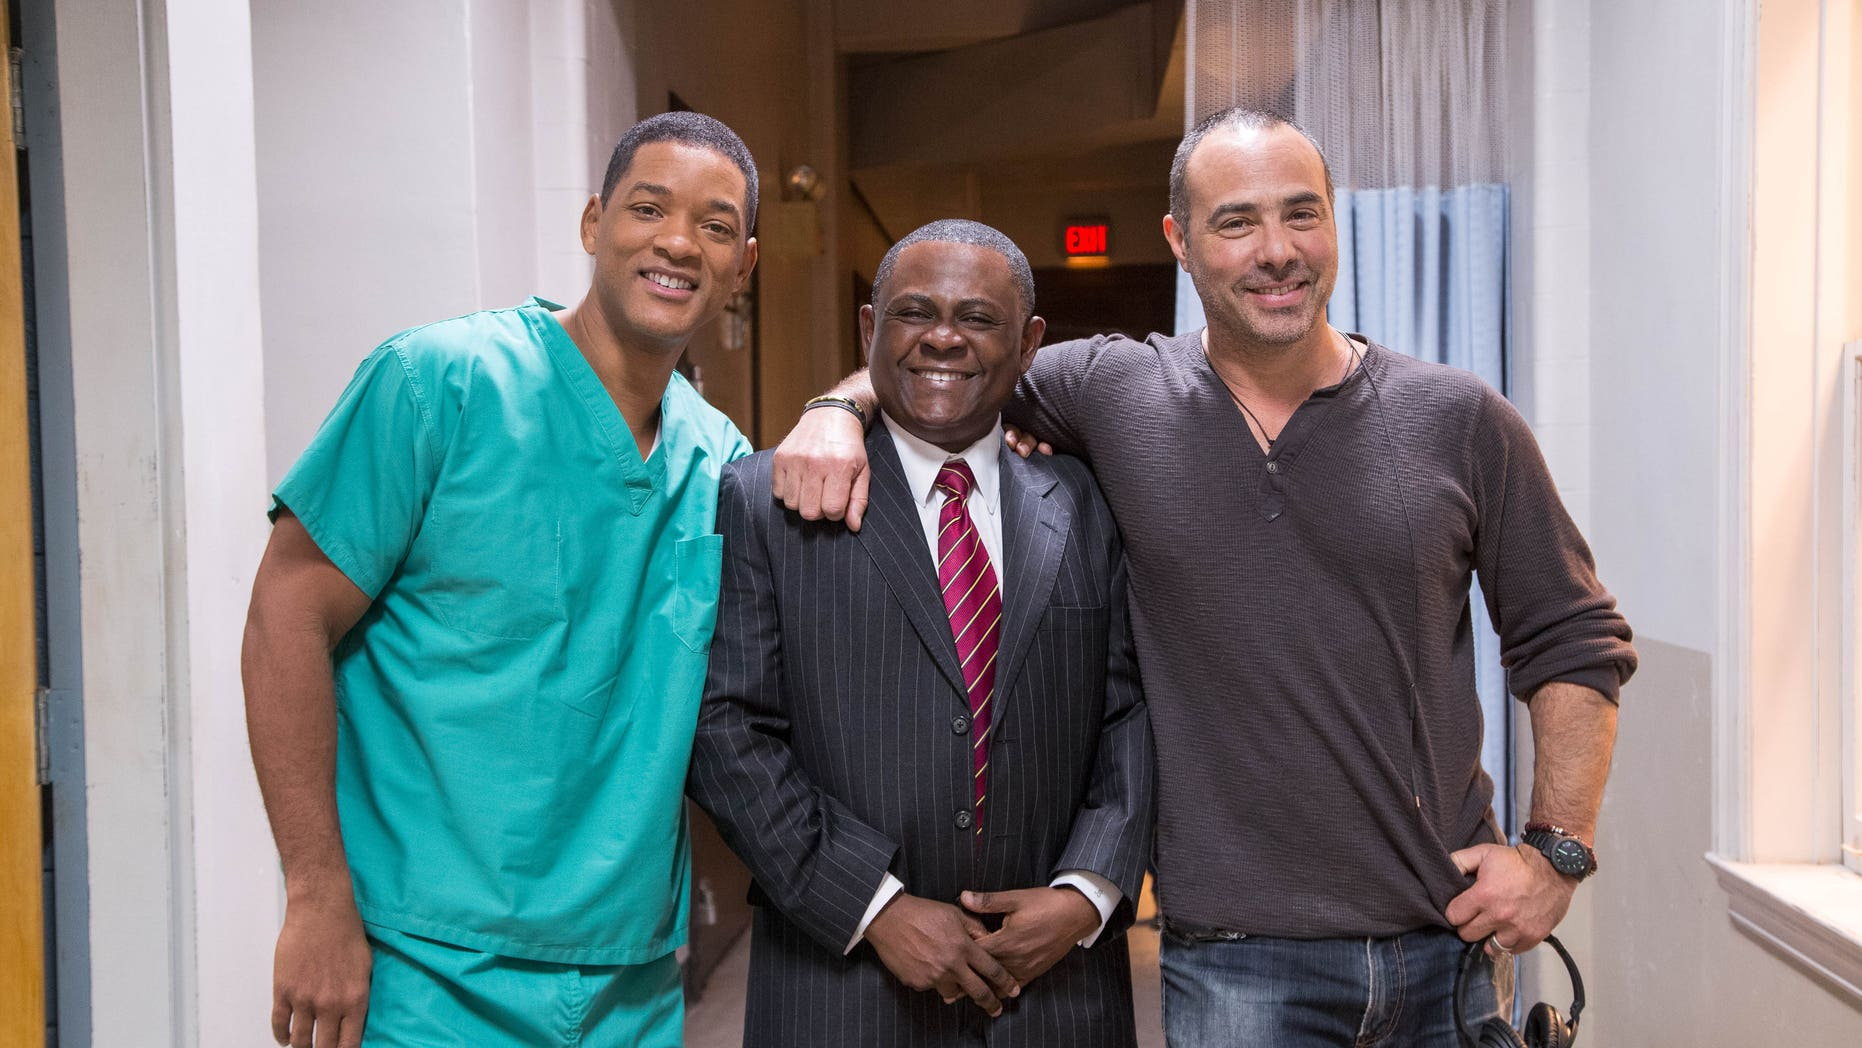 "This image released by Columbia Pictures shows, from left, Will Smith, Dr. Bennet Omalu and director Peter Landesman on the set of the film, ""Concussion."" Smith plays Omalu, a Nigerian-born forensic pathologist in Pittsburgh who knows nothing about football when he performs the autopsy on former Steelers center Mike Webster. Omalu discovers CTE in Webster's brain, setting him on a journey that exposes the concussion crisis. (Melinda Sue Gordon/Columbia Pictures via AP)"